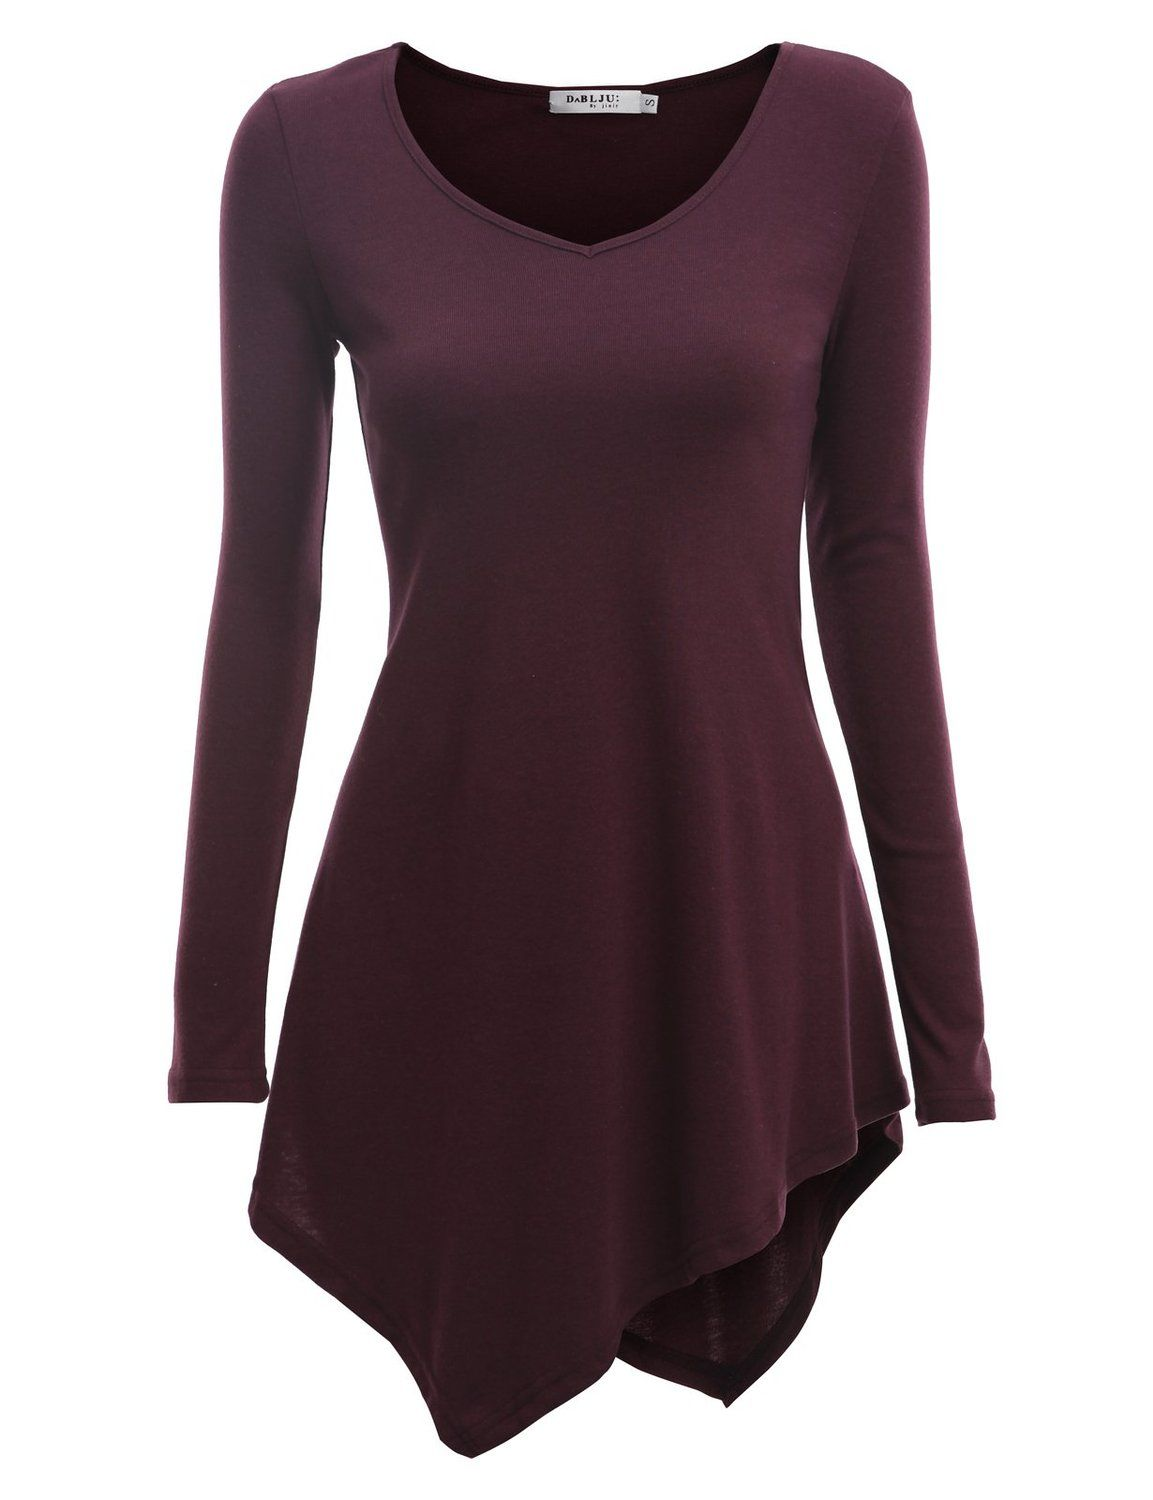 Womens Tunic Tops to Wear with Leggings | Cindy's | Pinterest | Tunics